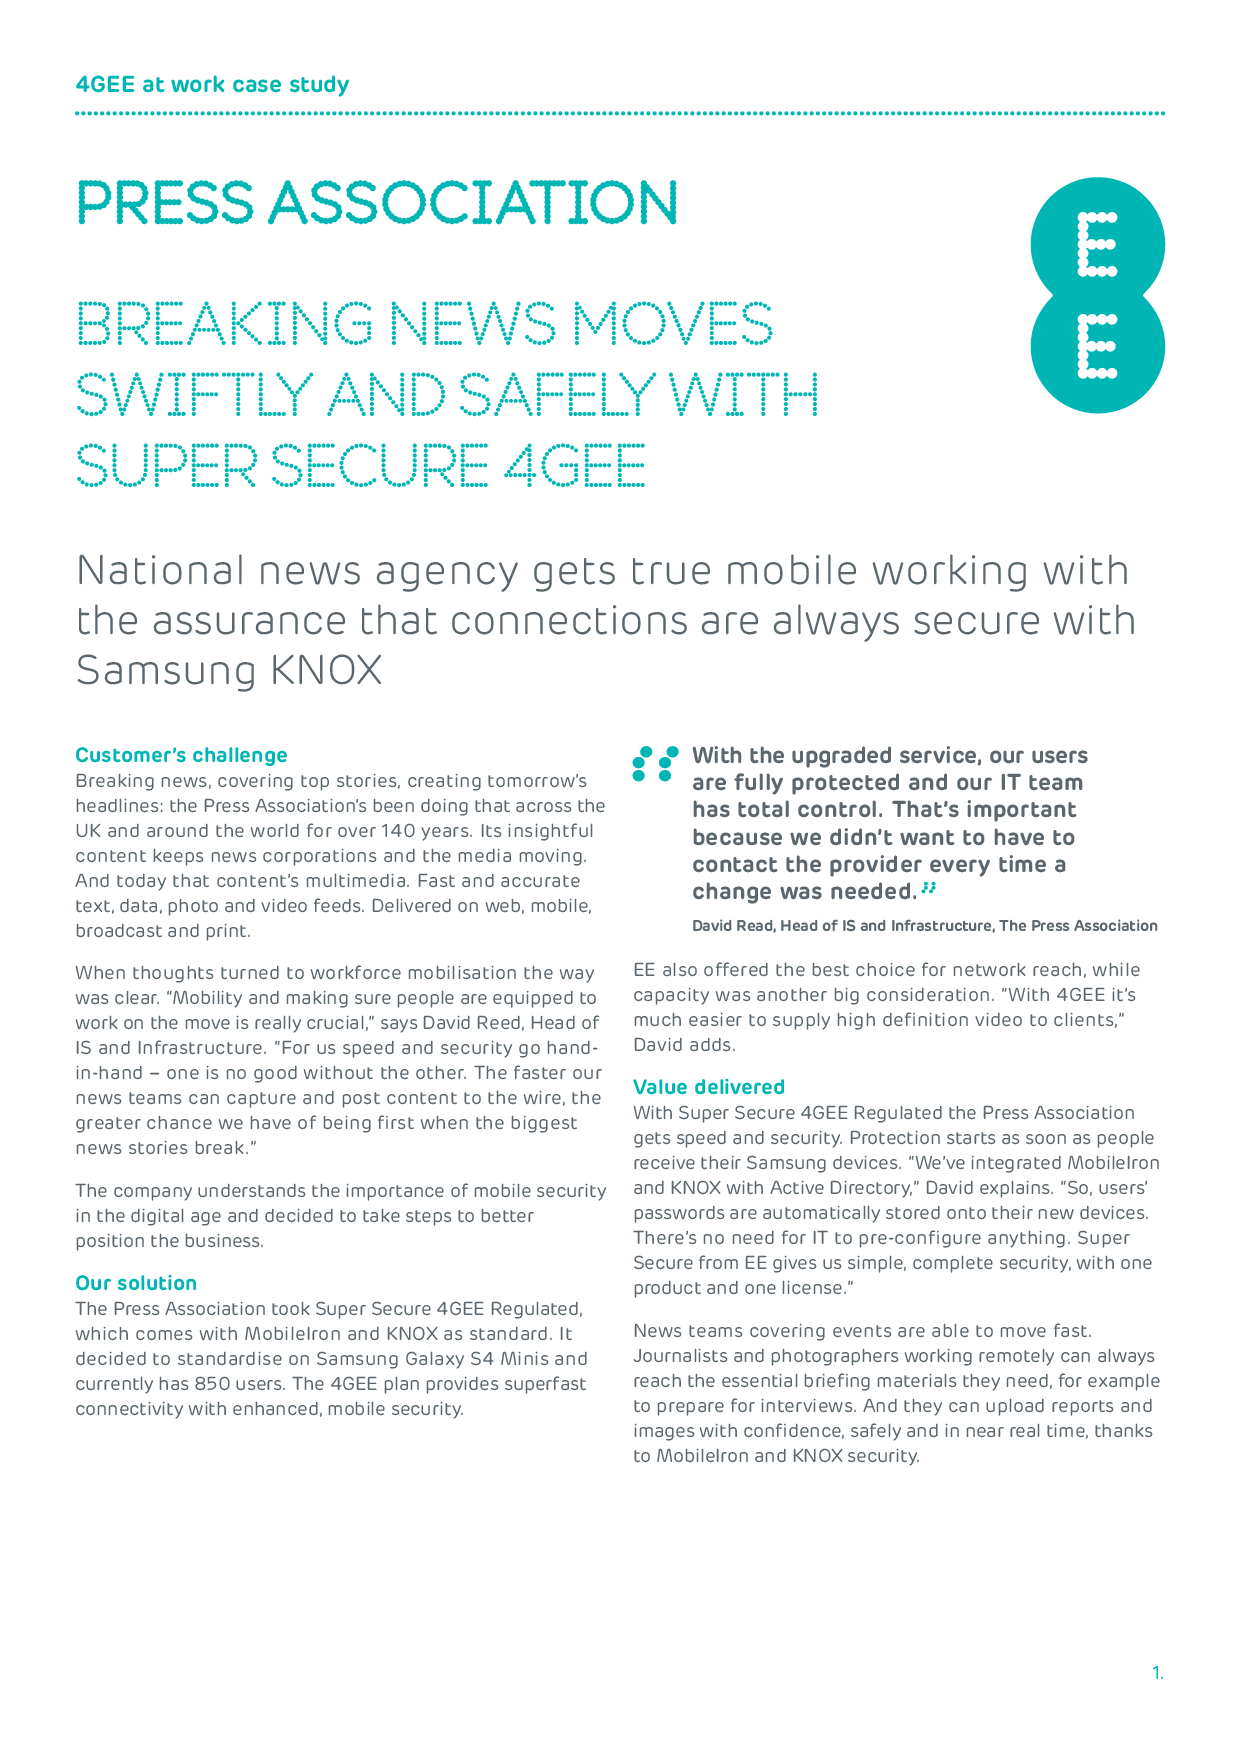 Breaking News Moves Swiftly And Safely With Super Secure 4G